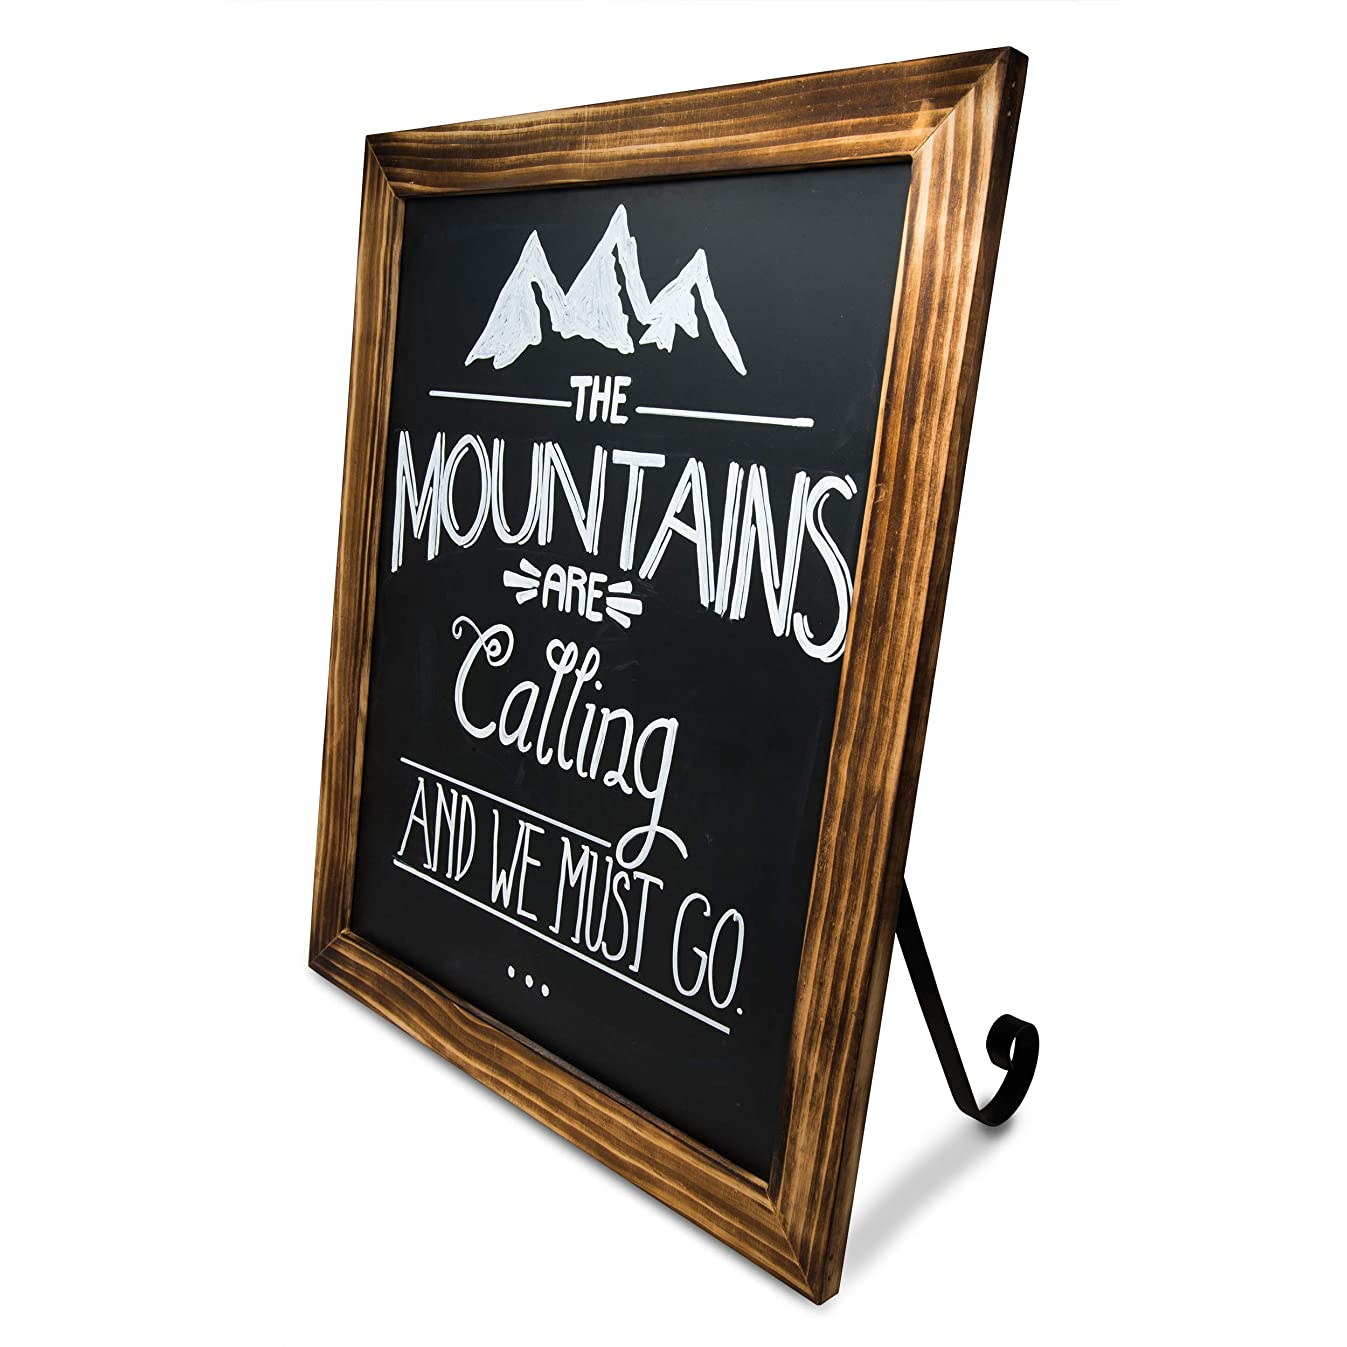 TenXVI Designs 18x22 Freestanding/Hanging Vertical or Horizontal Magnetic Rustic Chalkboard Sign with Removable Legs for Weddings, Restaurants and Home Decor - Torched Wood